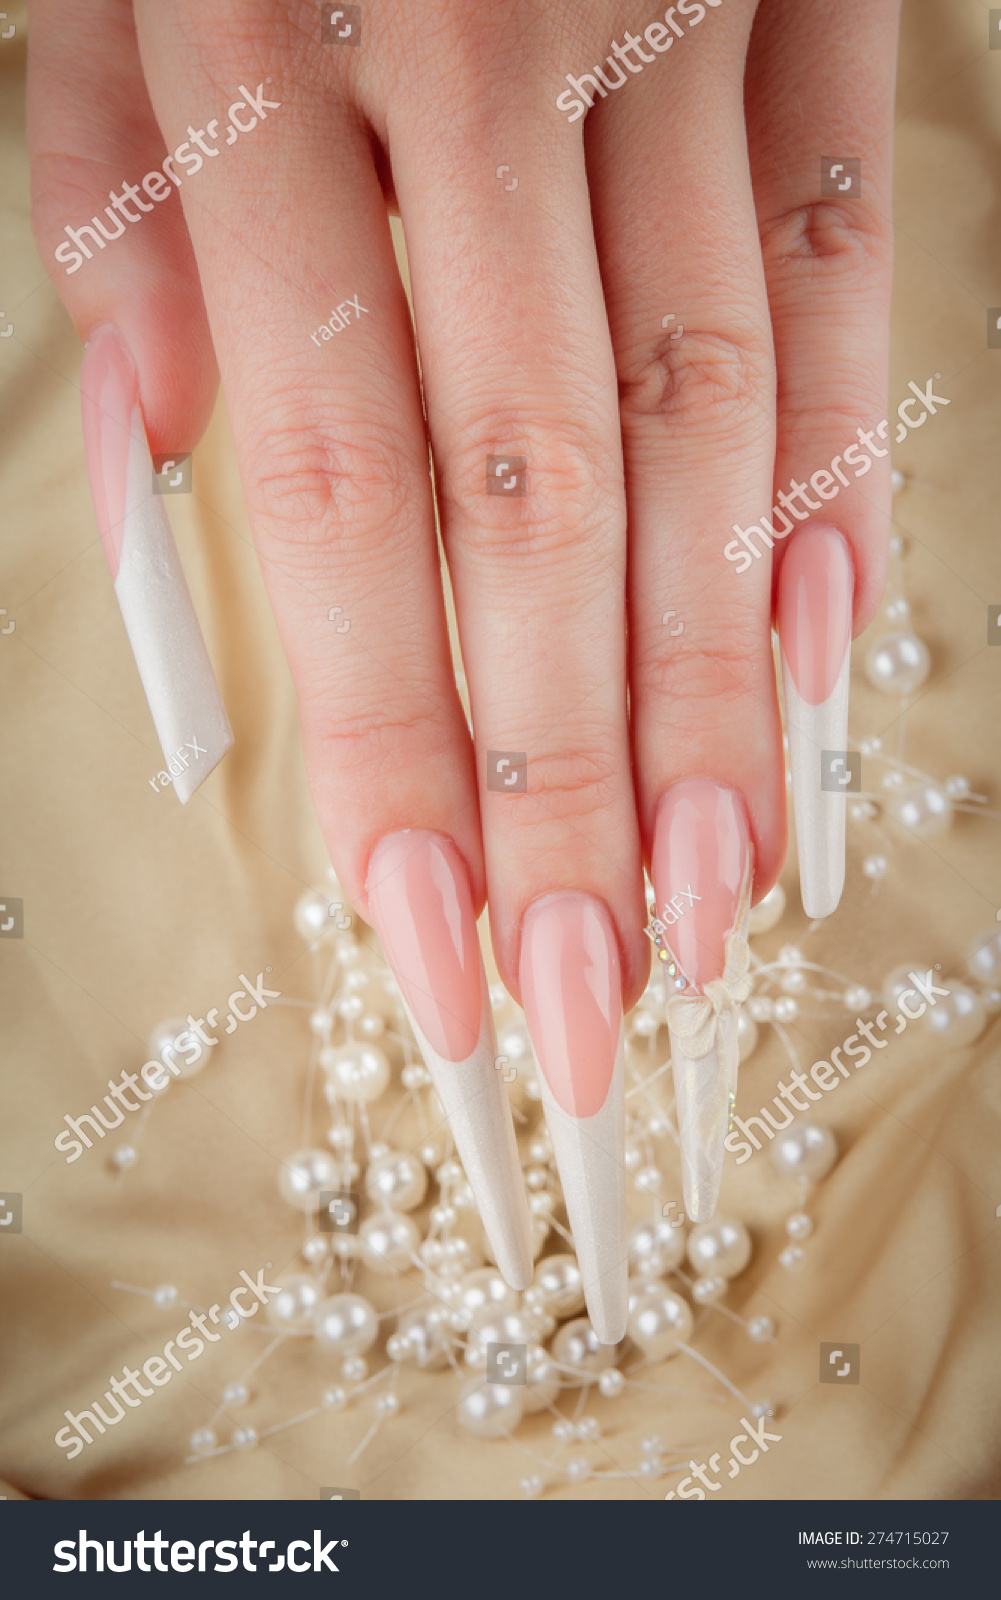 Painted Extreme Long Nails Hands Pearl Stock Photo (Edit Now ...